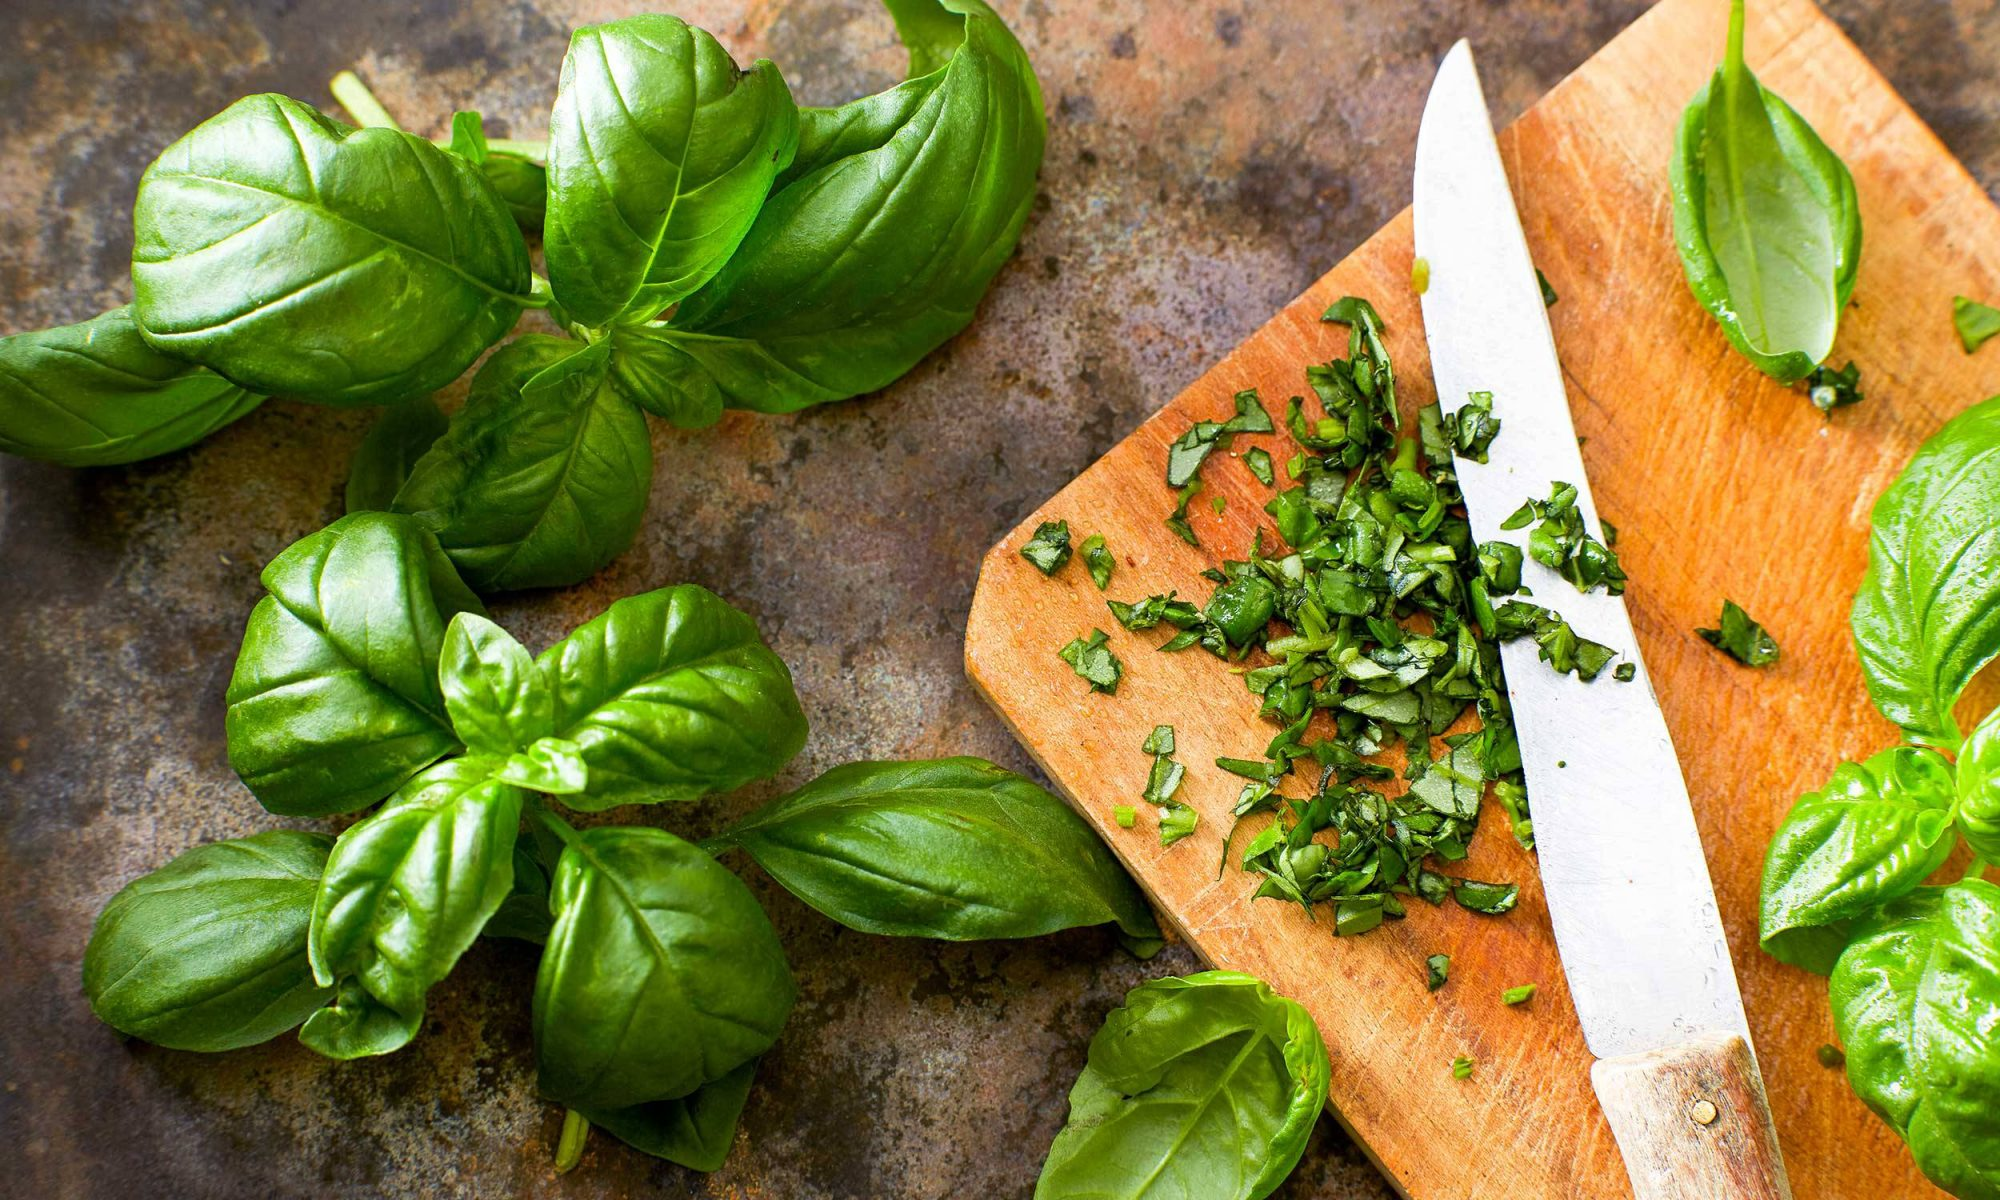 How to Store Basil So It Stays Fresh